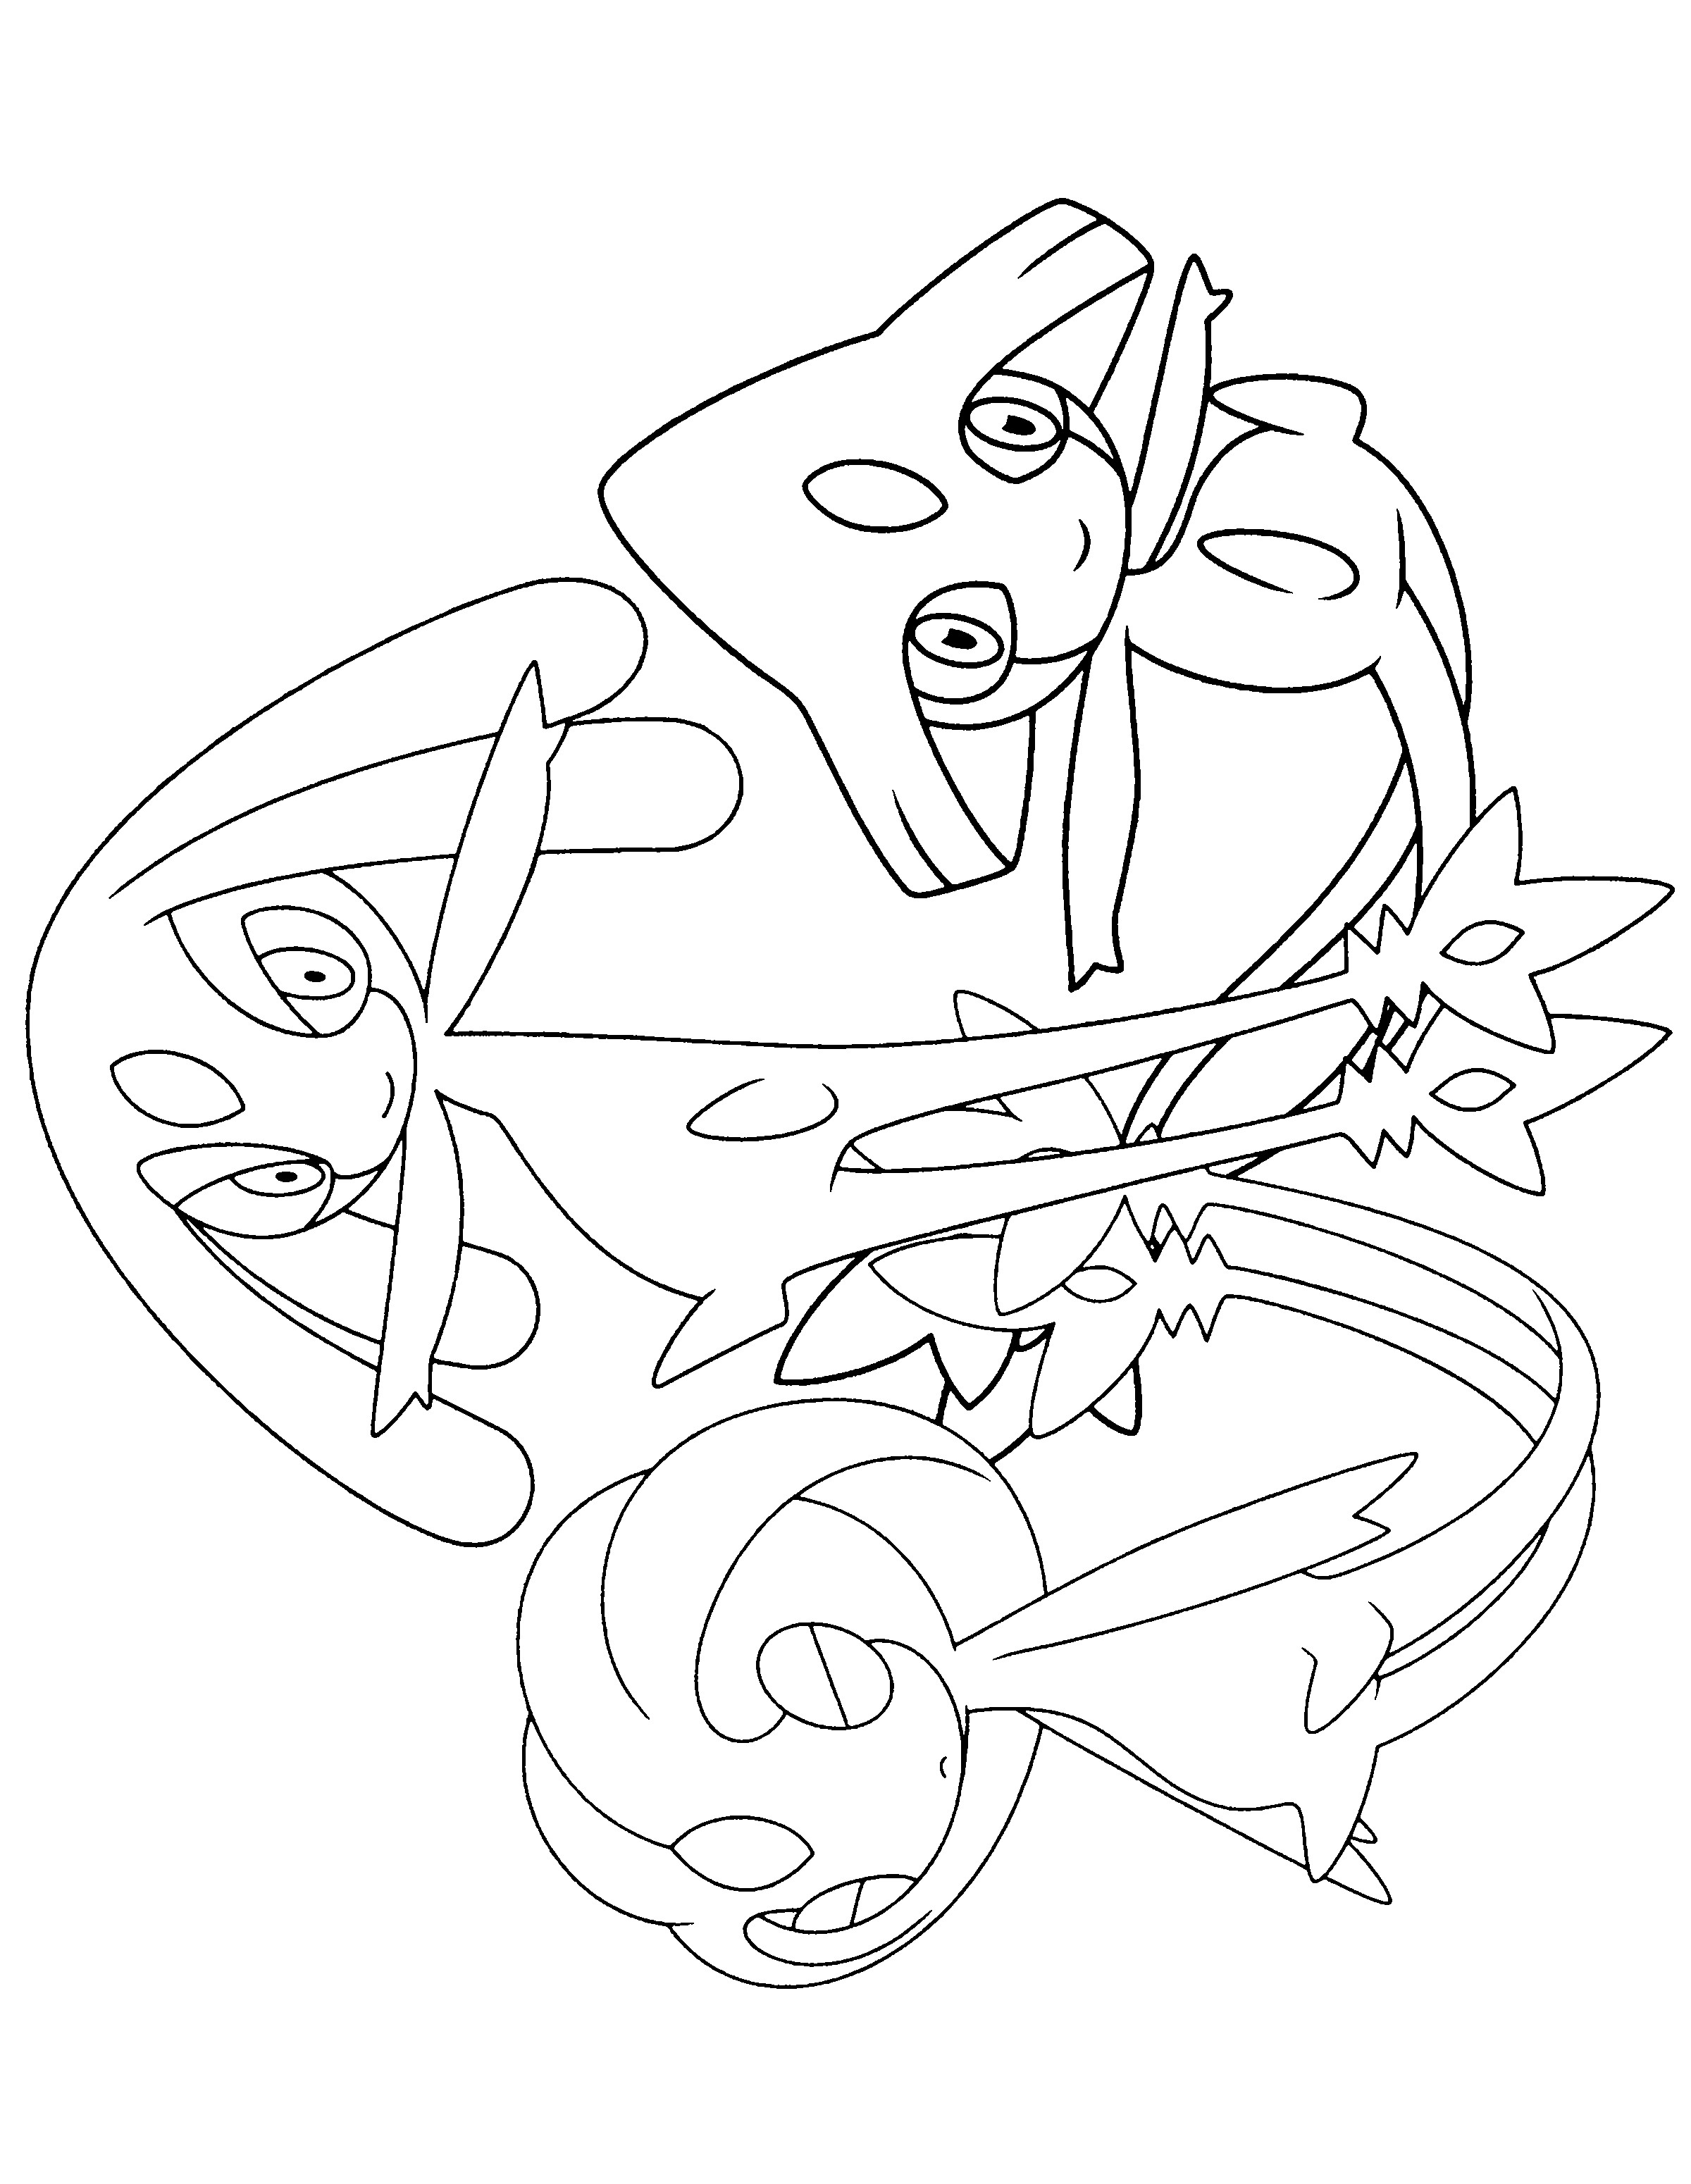 Glaceon Coloring Pages